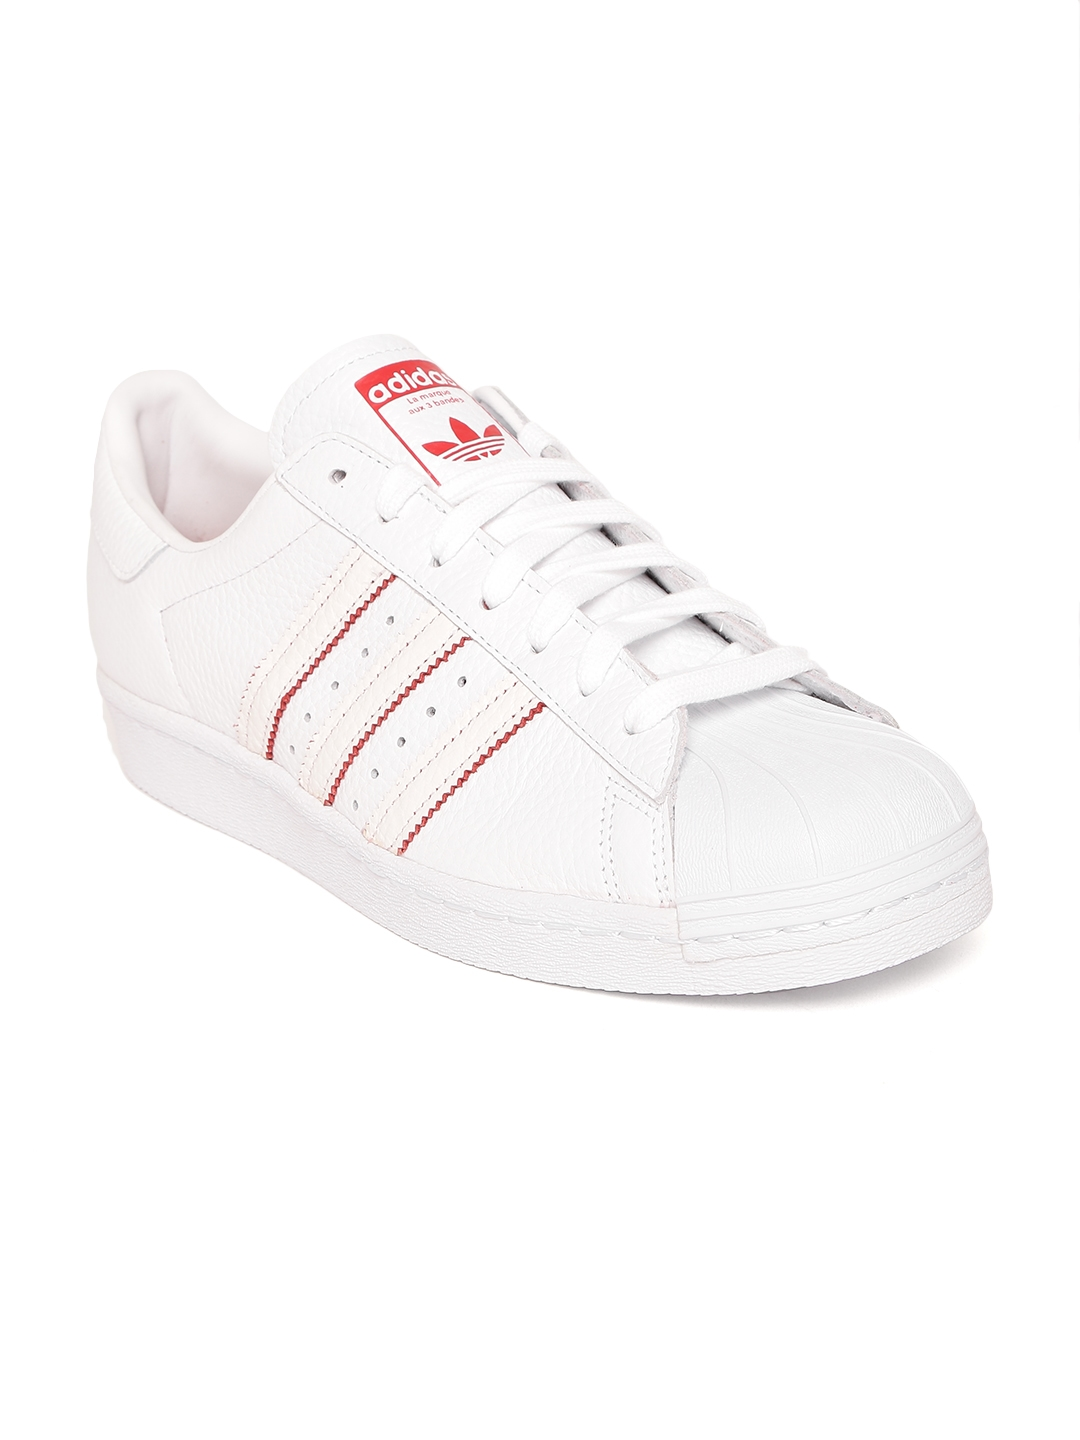 05171cade873 Buy ADIDAS Originals Men White Superstar 80S CNY Leather Sneakers ...